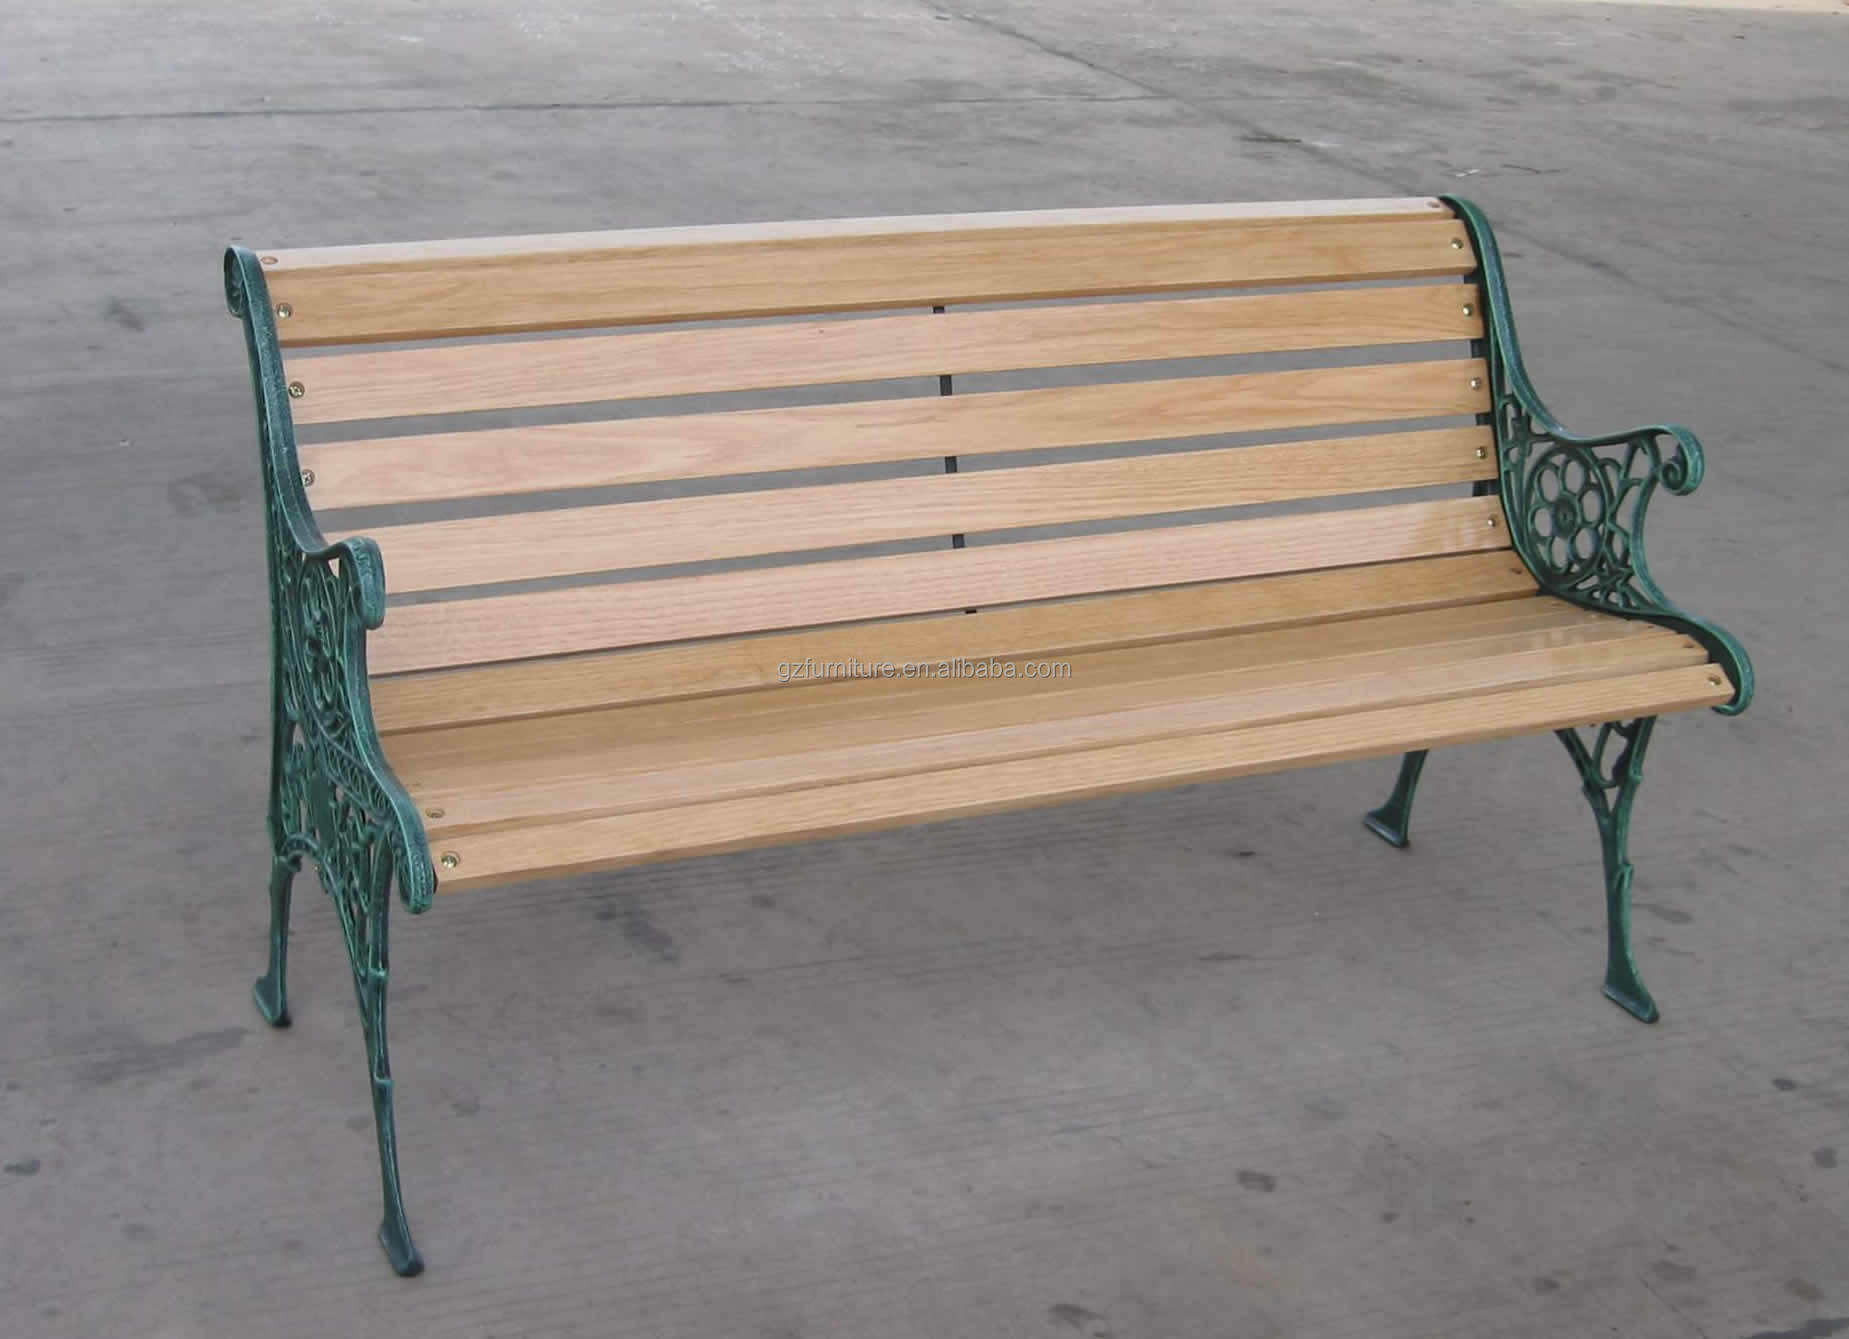 Outdoor Cast Iron Garden Bench Buy Wooden Slats With Cast Iron Legs 3 Seater Wooden Outdoor